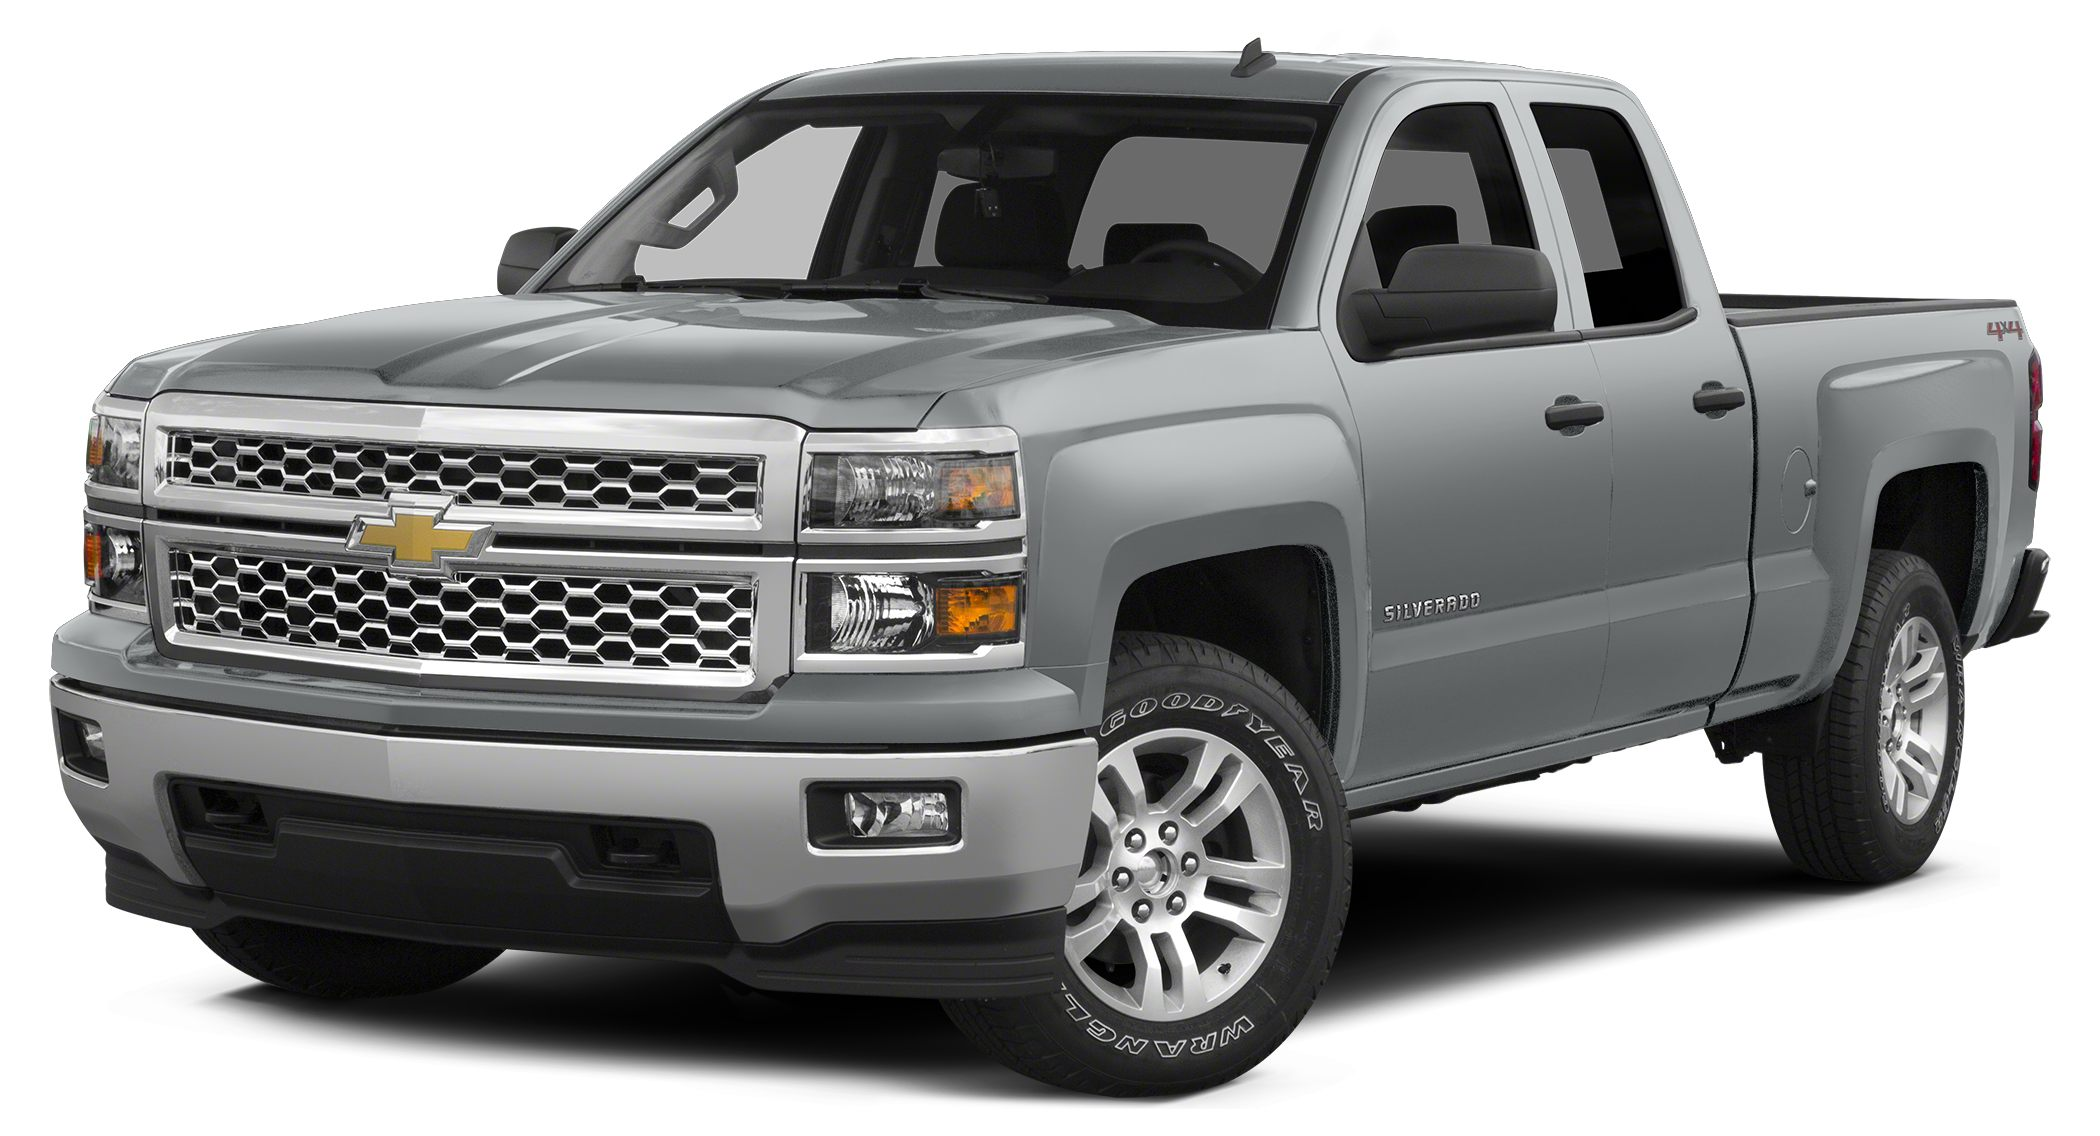 2014 Chevrolet Silverado 1500 LT Everybody is looking for this truck Low miles great condition